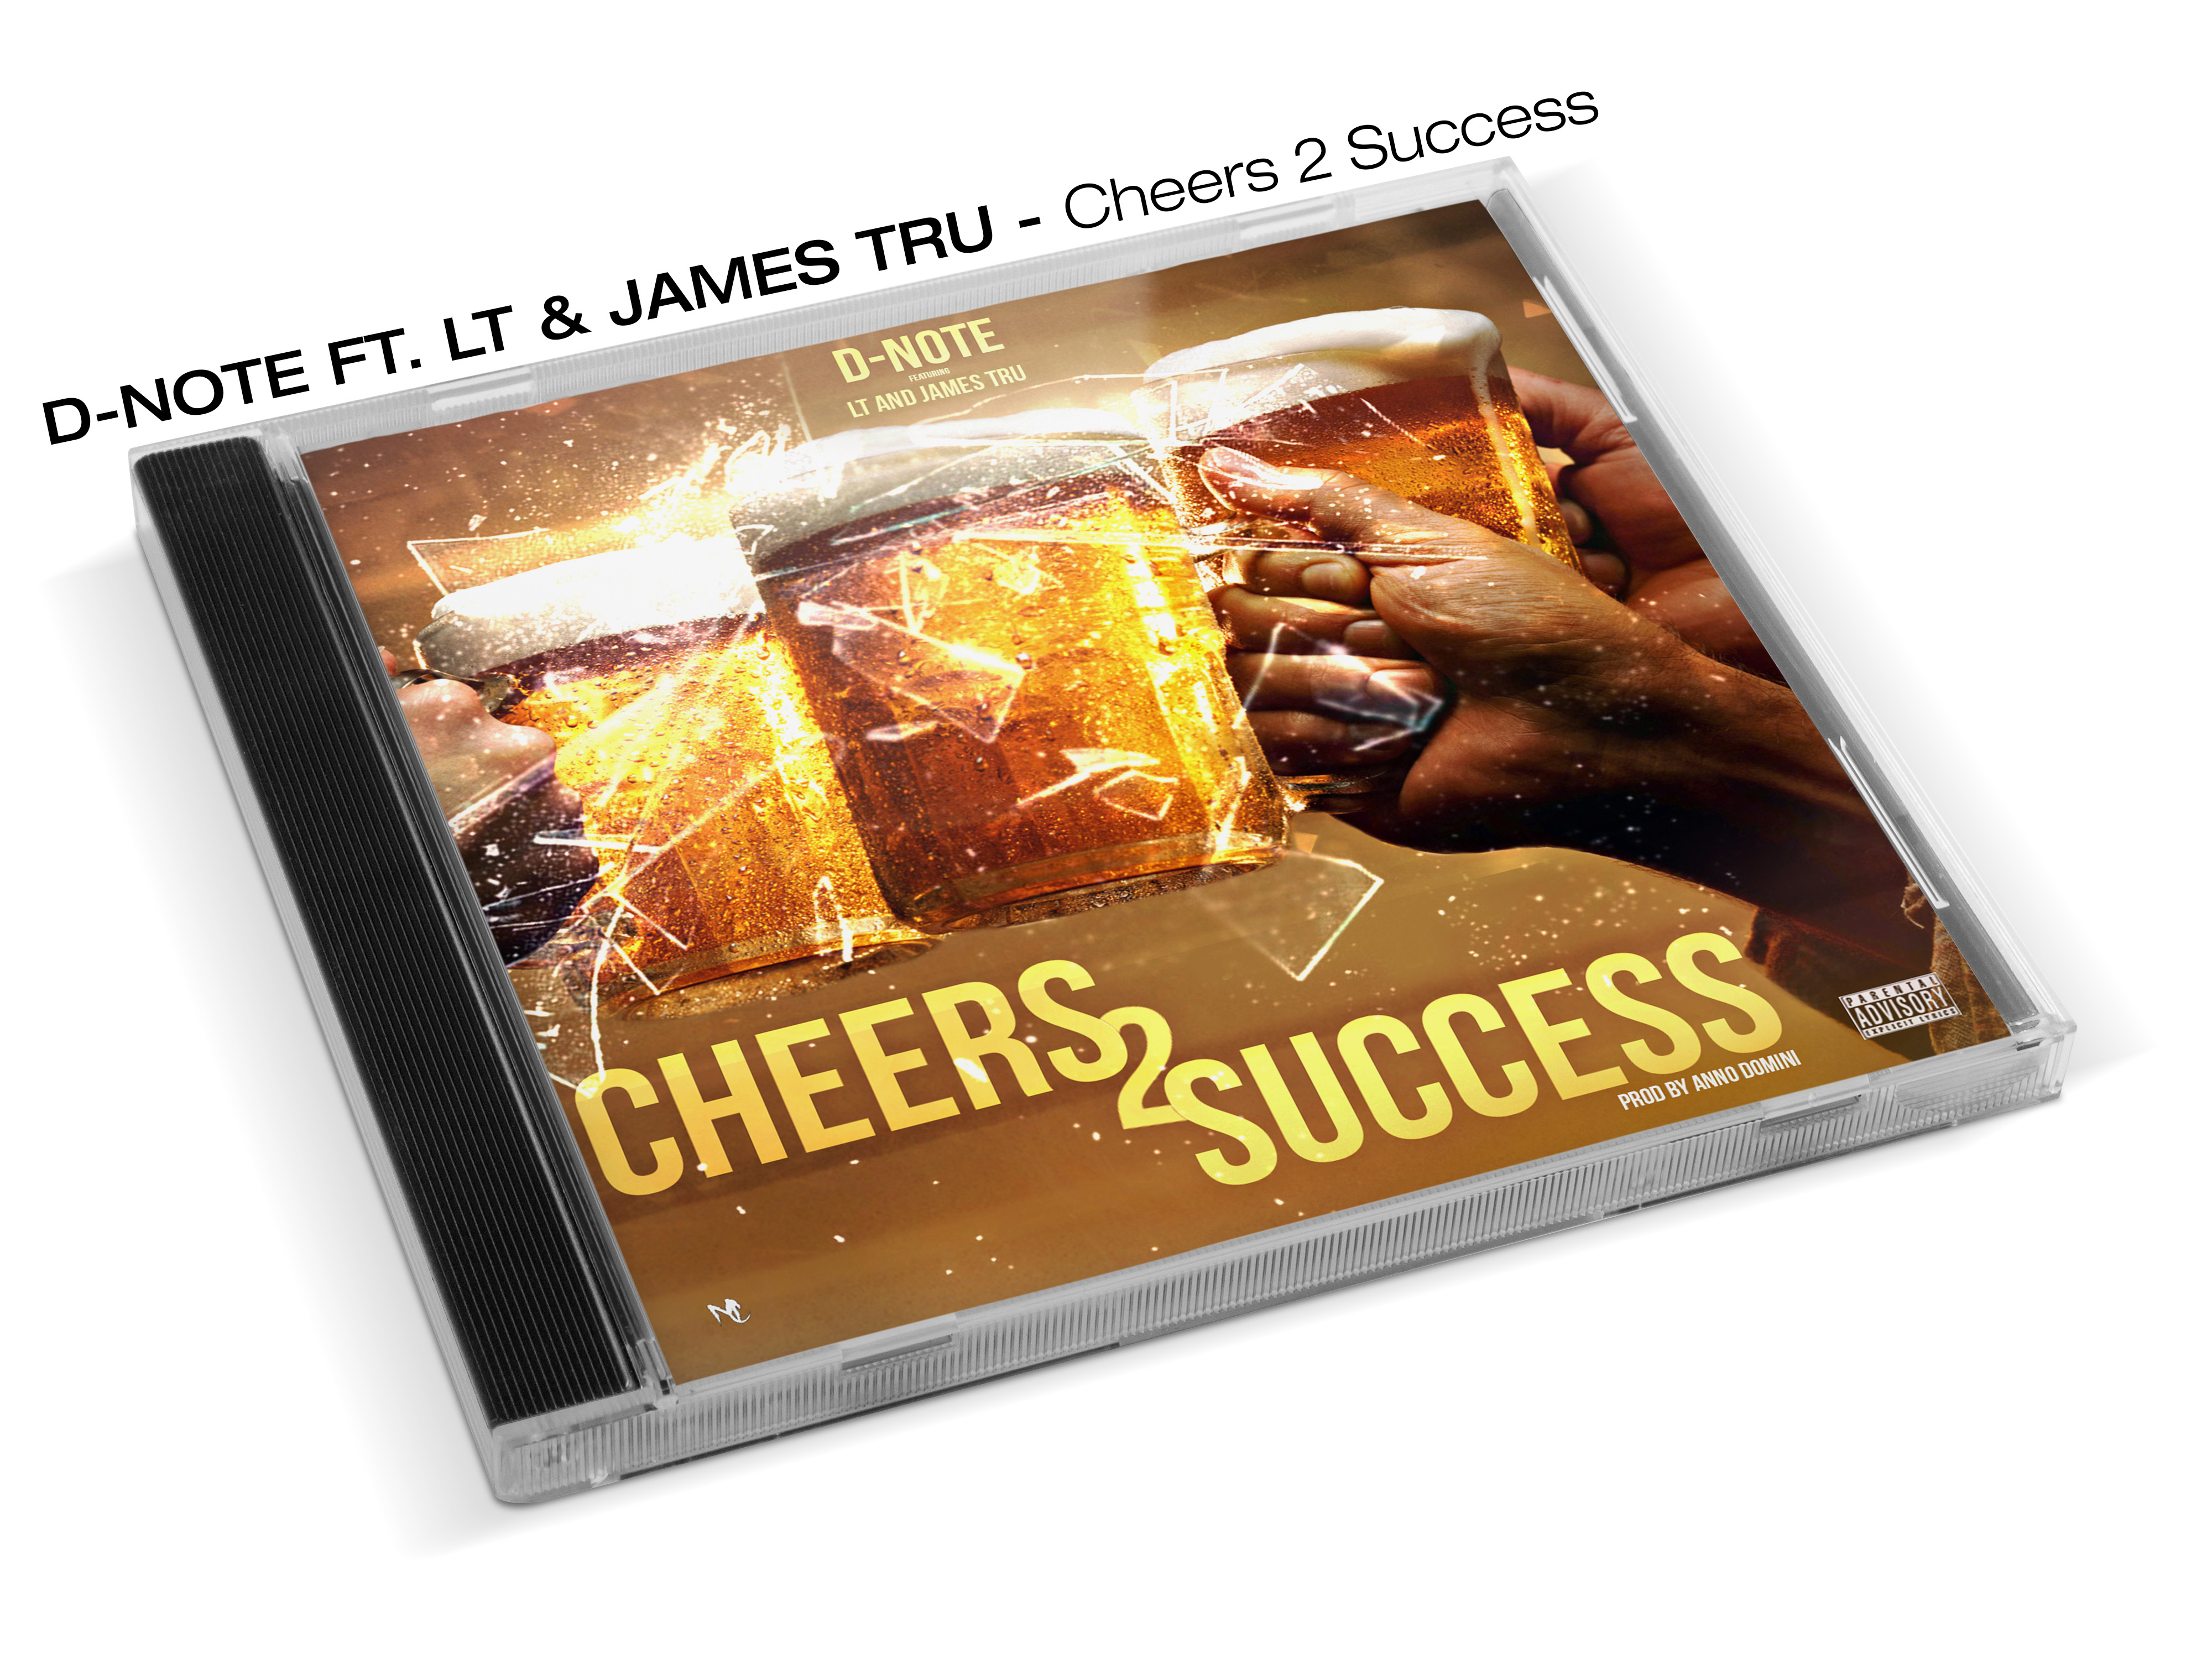 Cheers To success CD